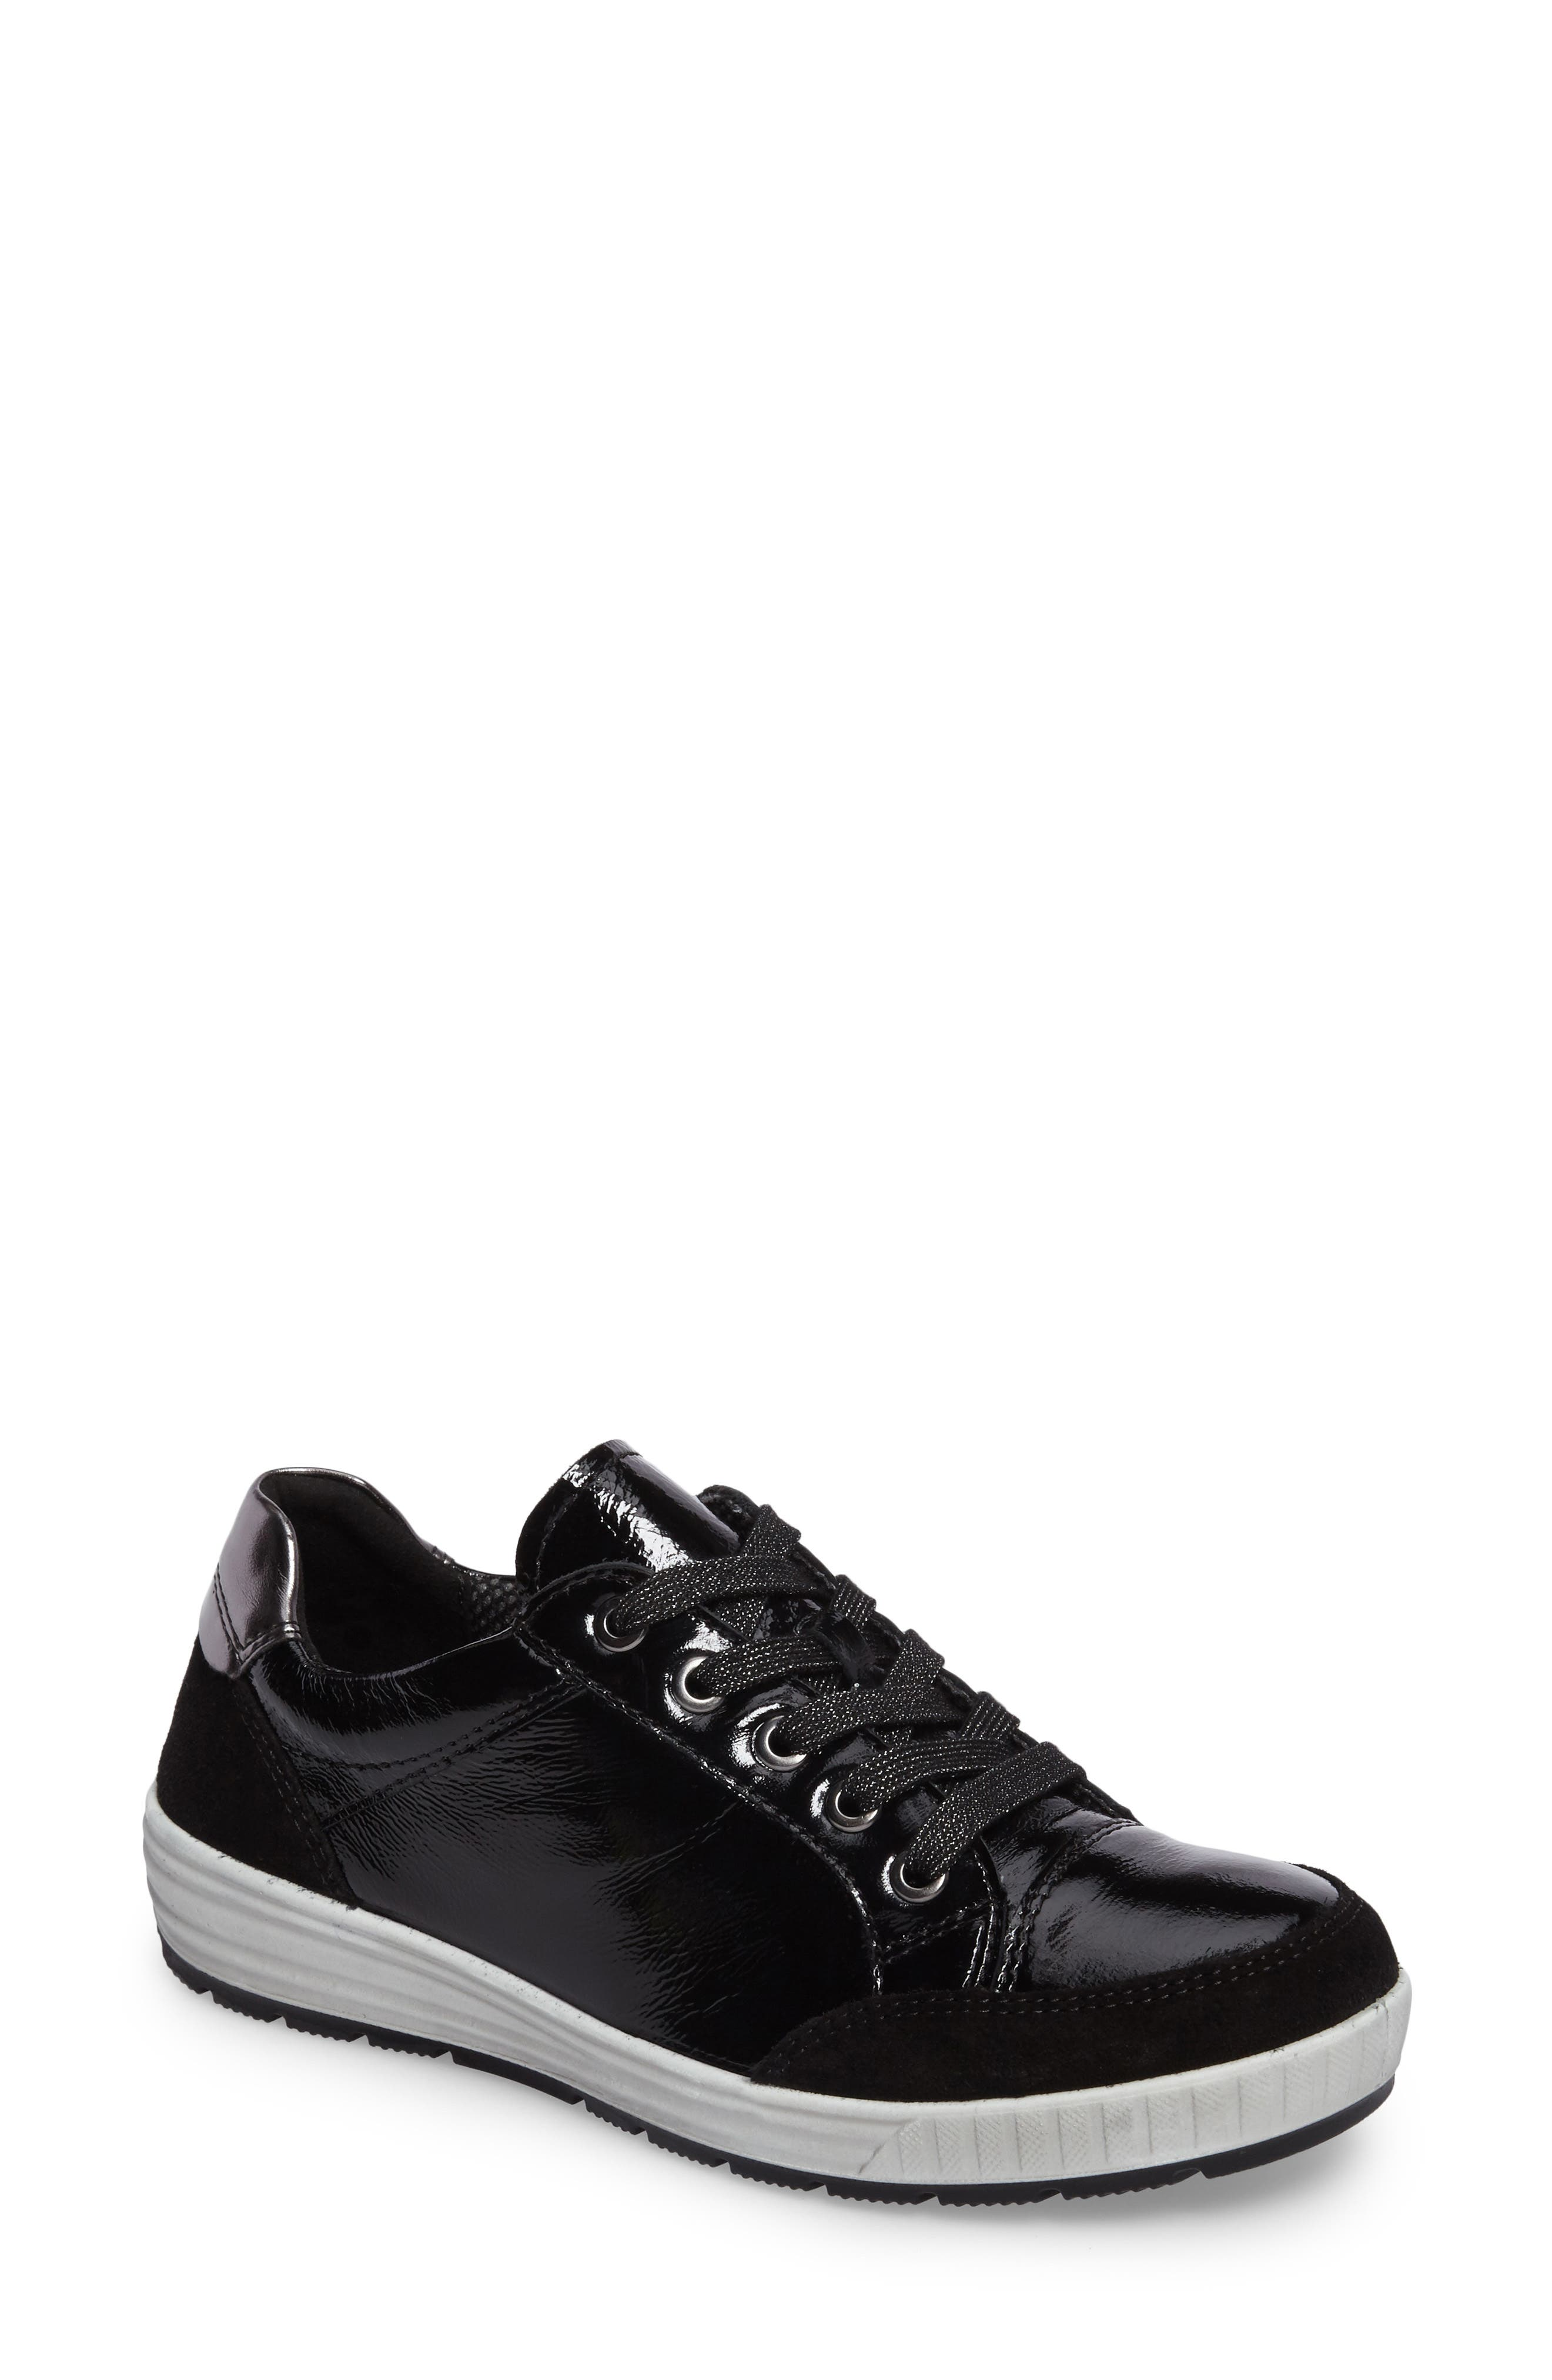 Nicole Sneaker,                             Main thumbnail 1, color,                             BLACK LEATHER